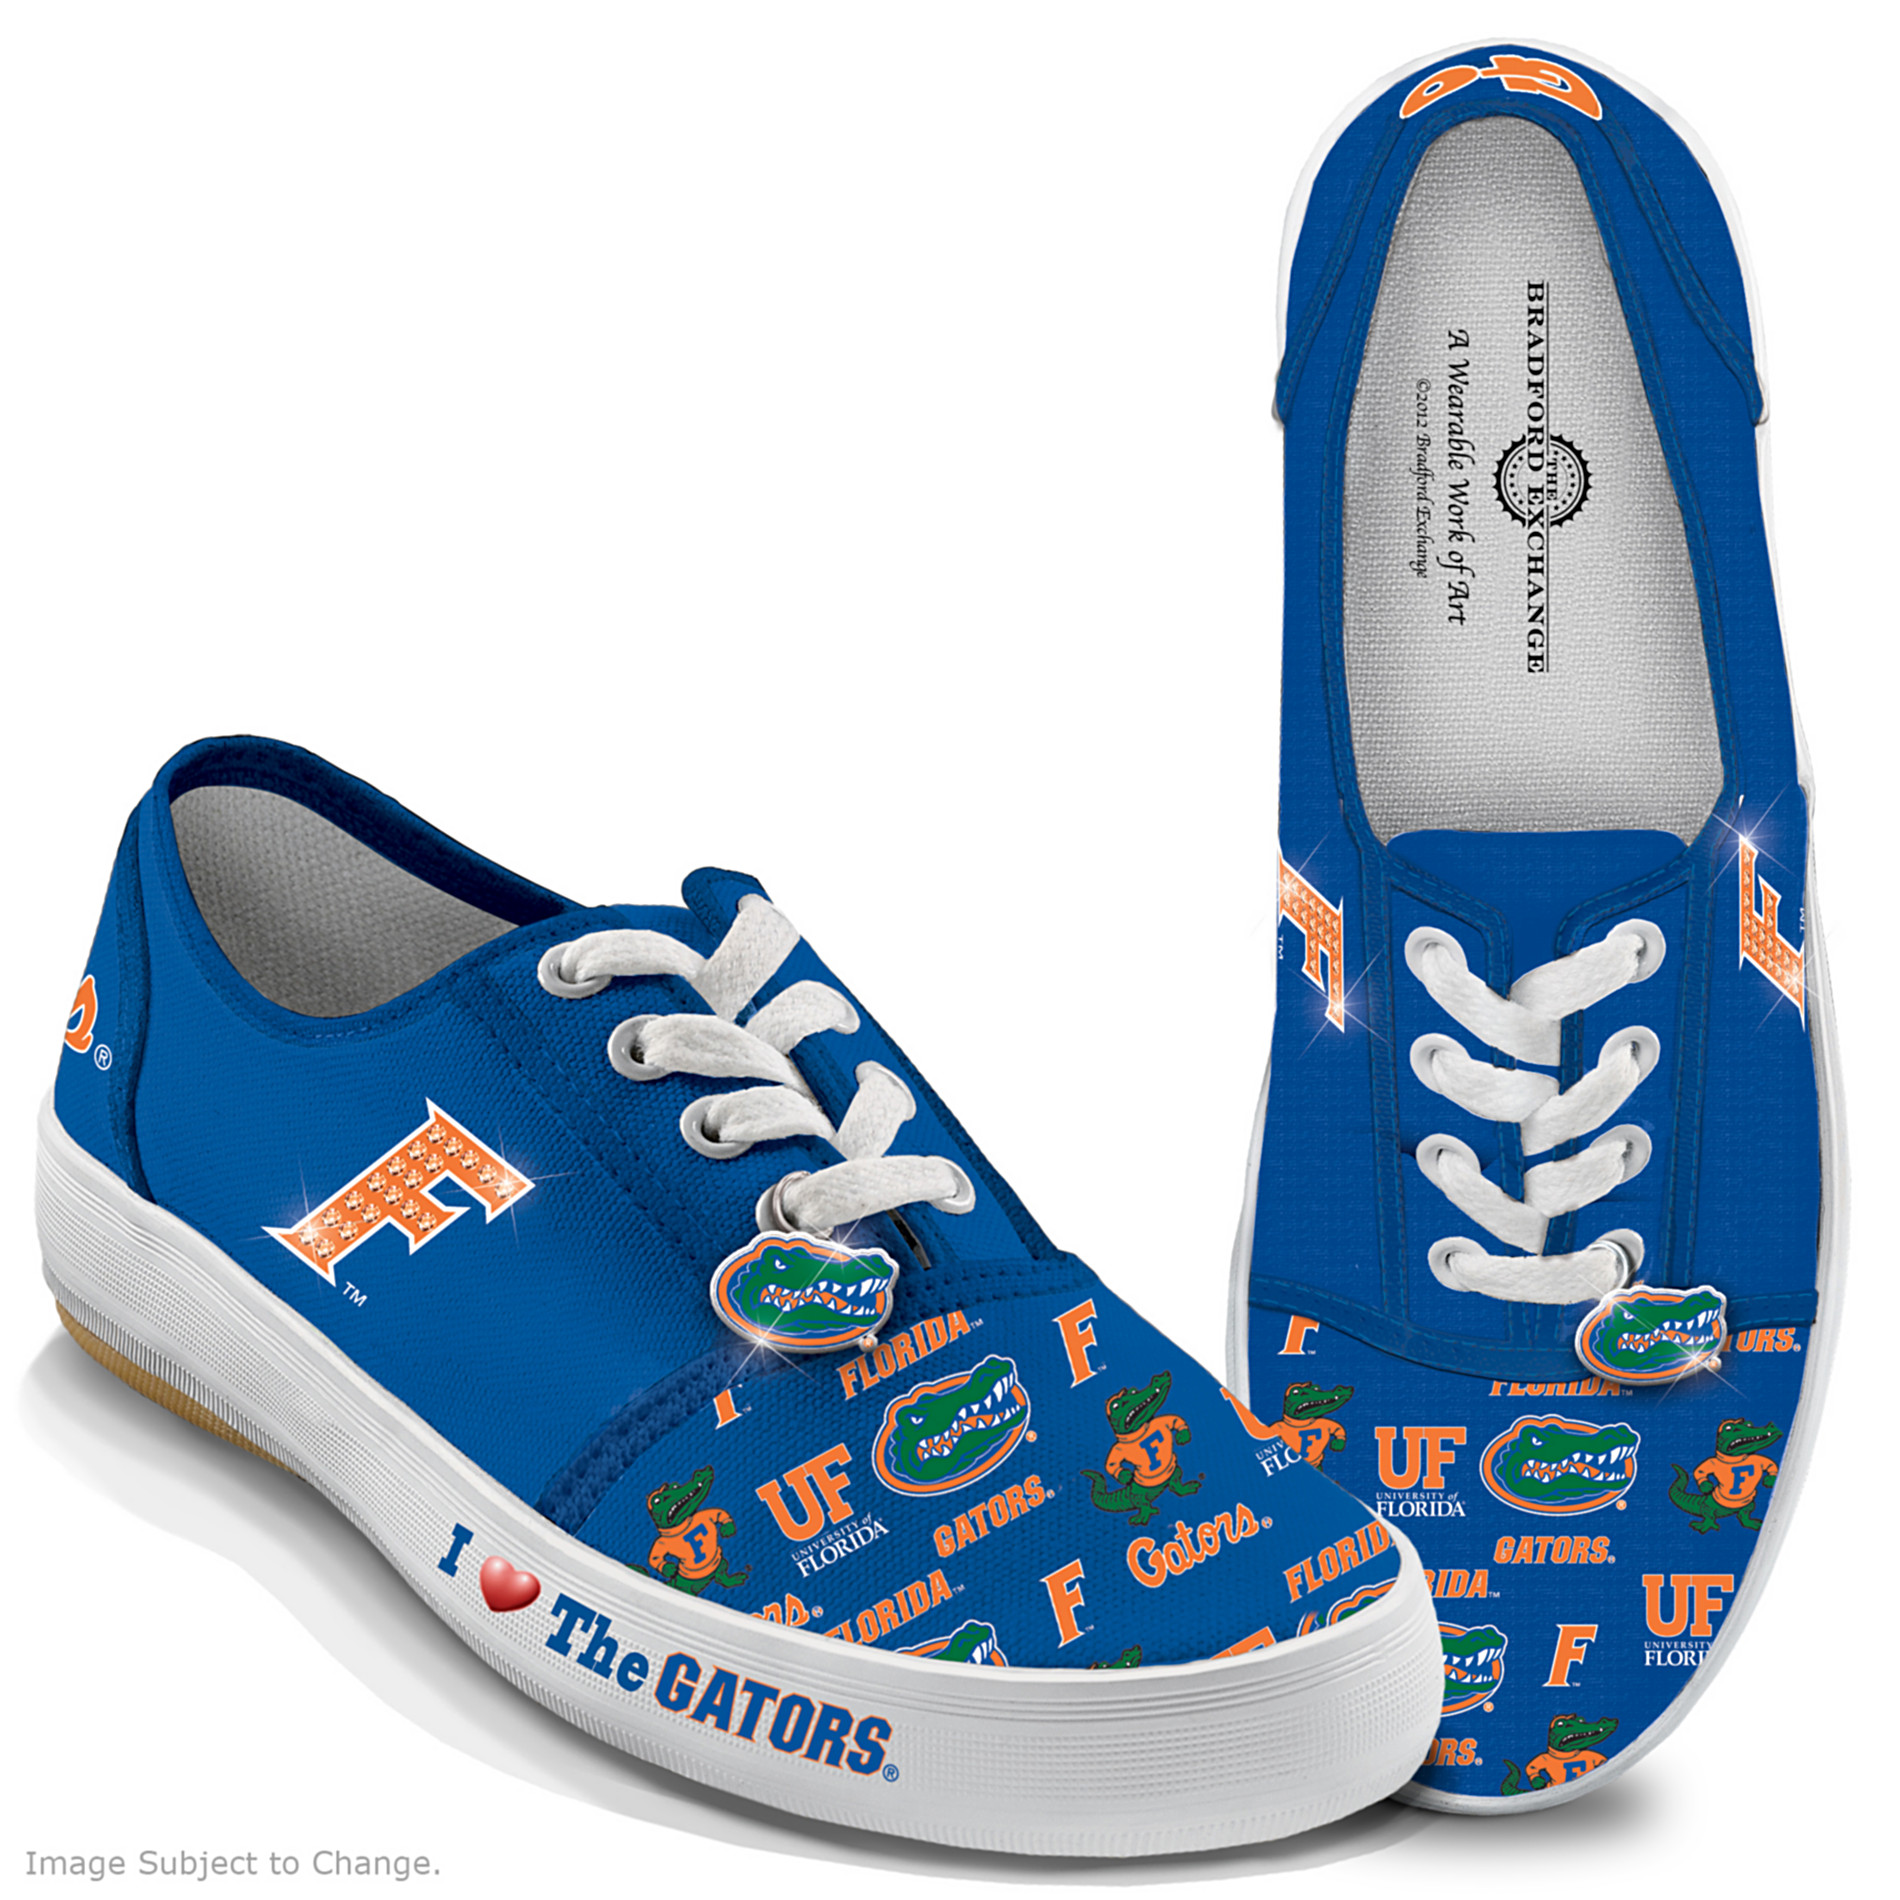 The Bradford Exchange University Of Florida Gators Women's Shoes: I Love The Gators at Sears.com